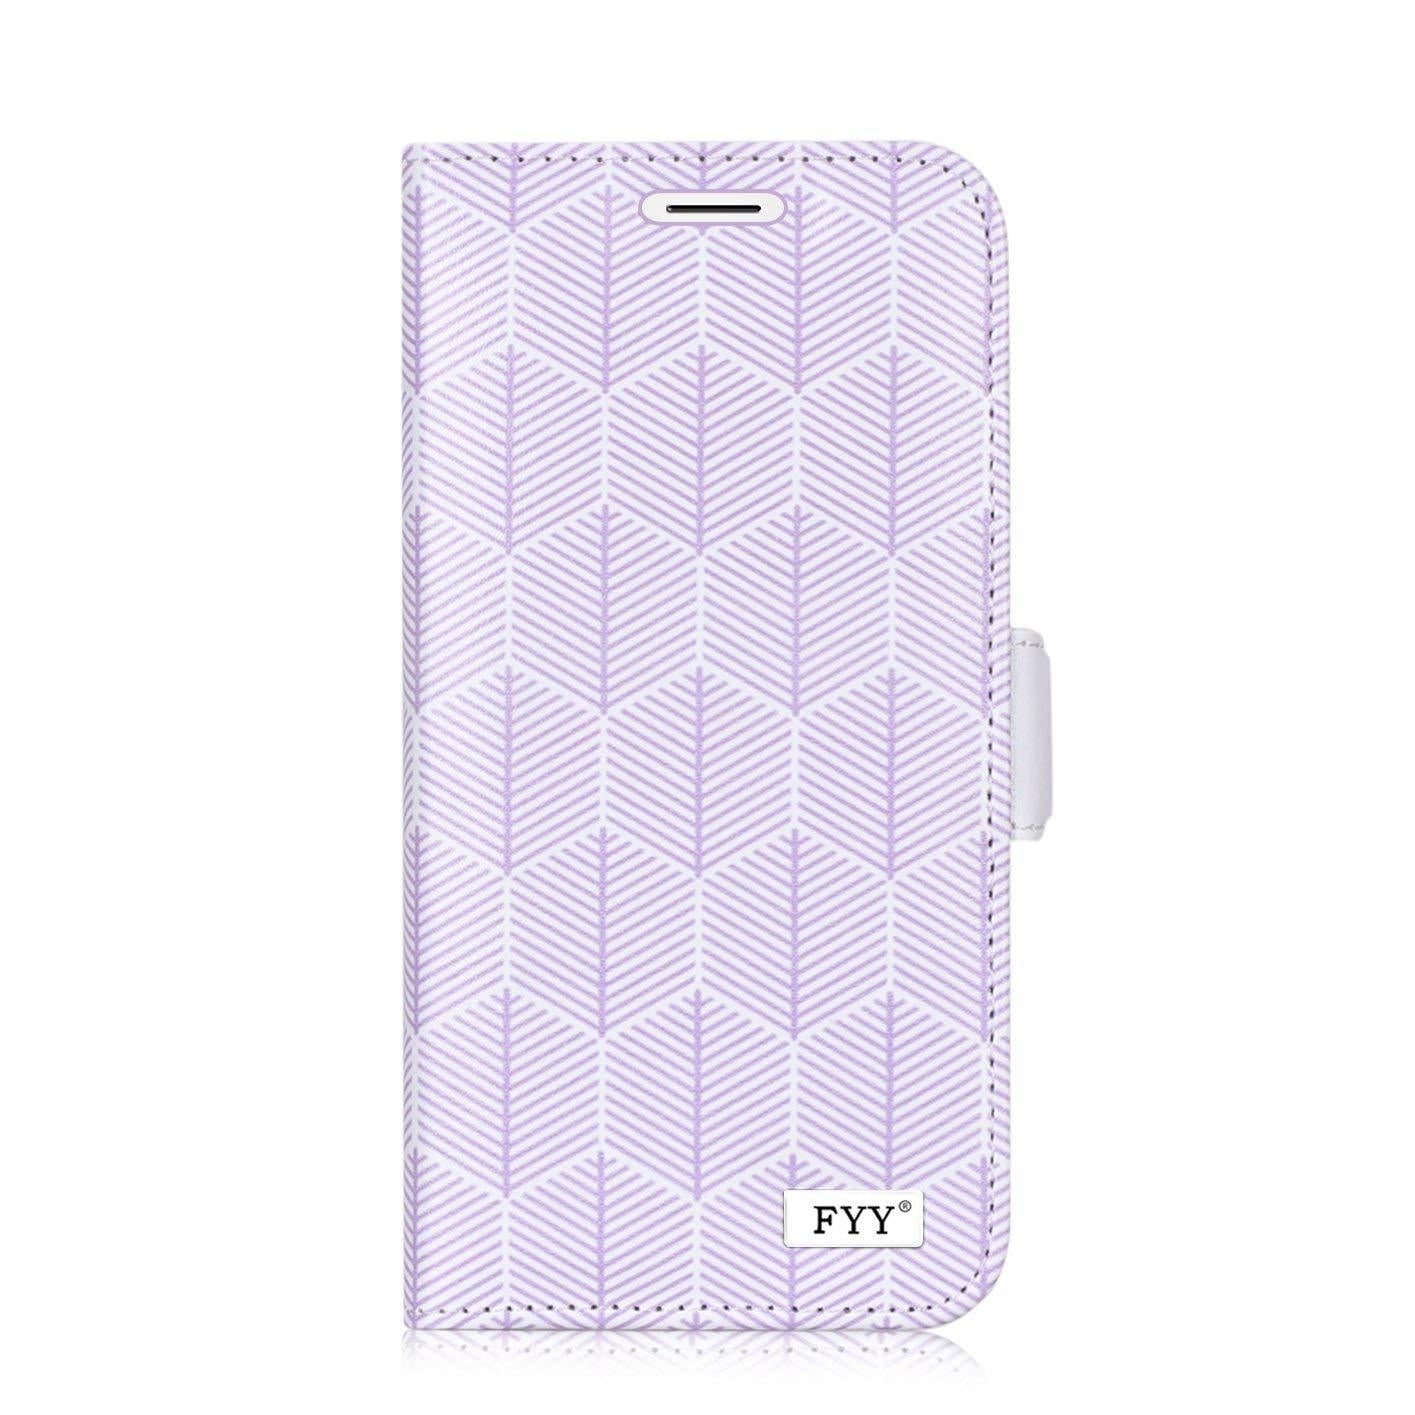 "PU Leather Wallet Case for iPhone 7/8 (4.7"")"